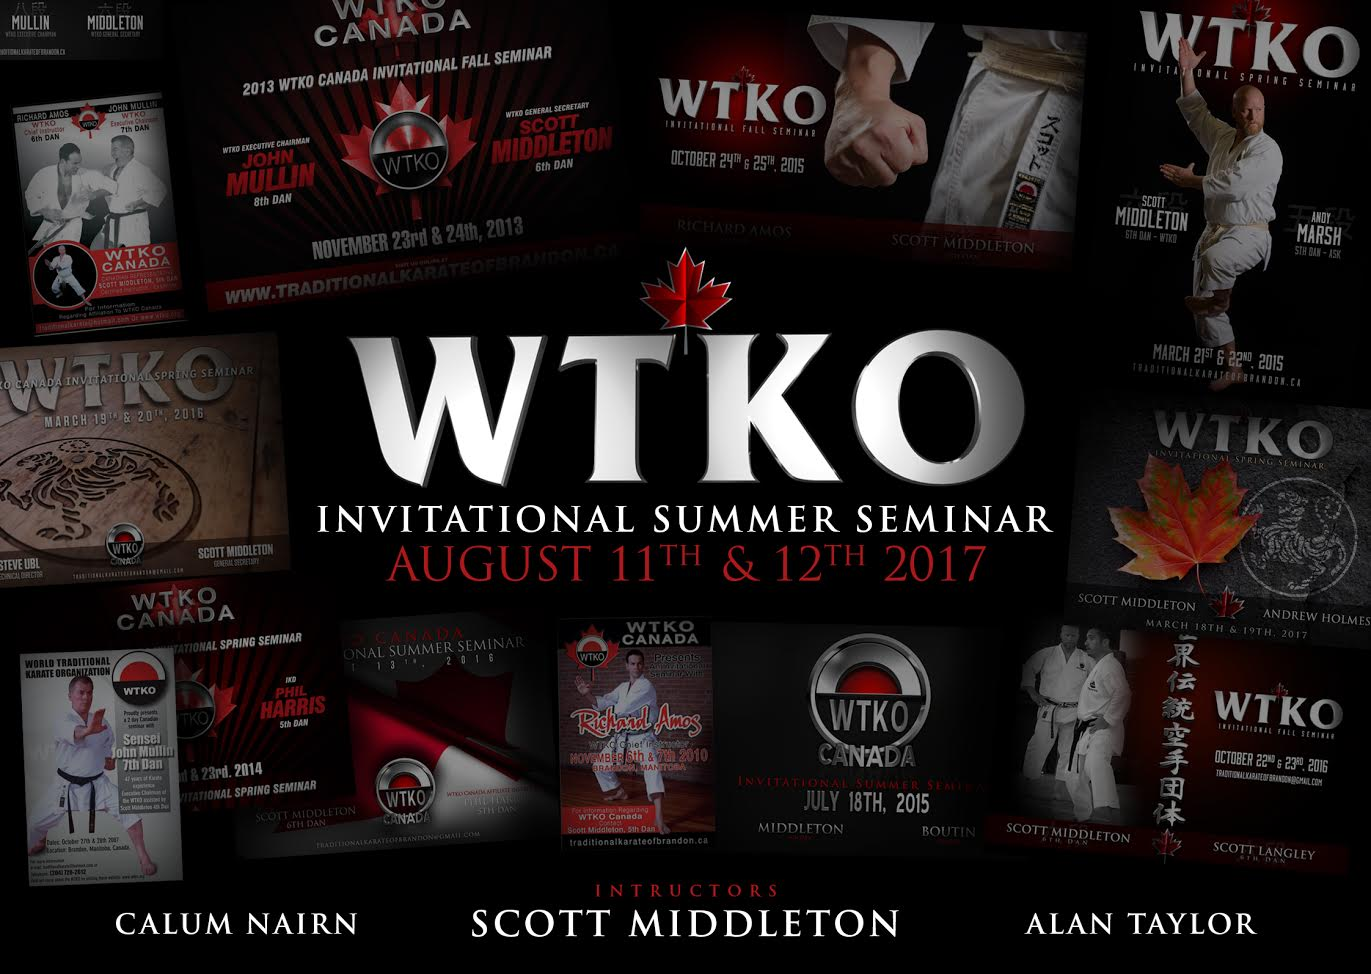 2017 WTKO Canada Invitational Summer Seminar